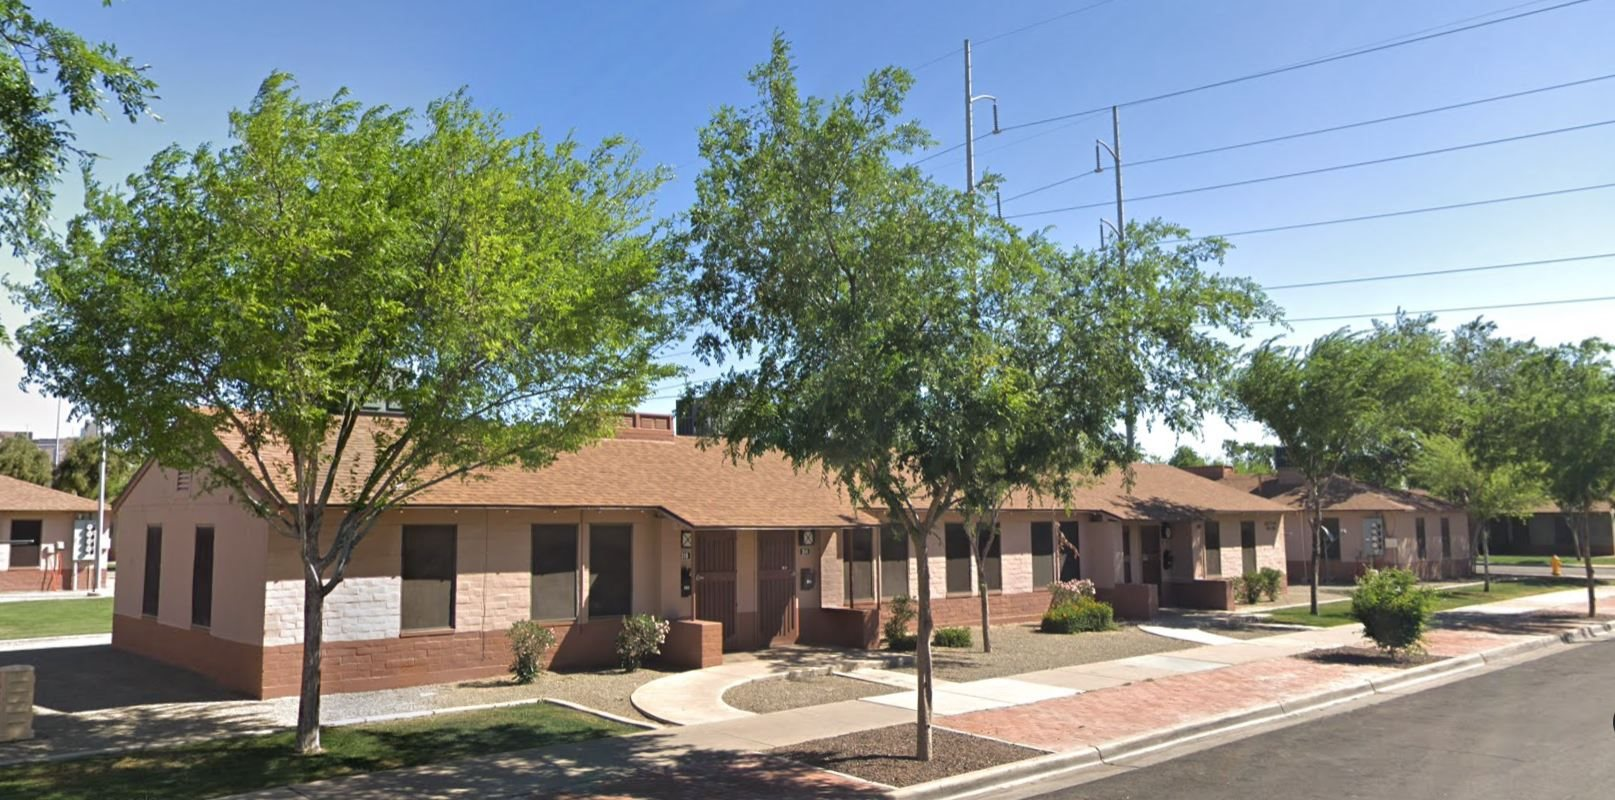 Image of Marcos De Niza in Phoenix, Arizona